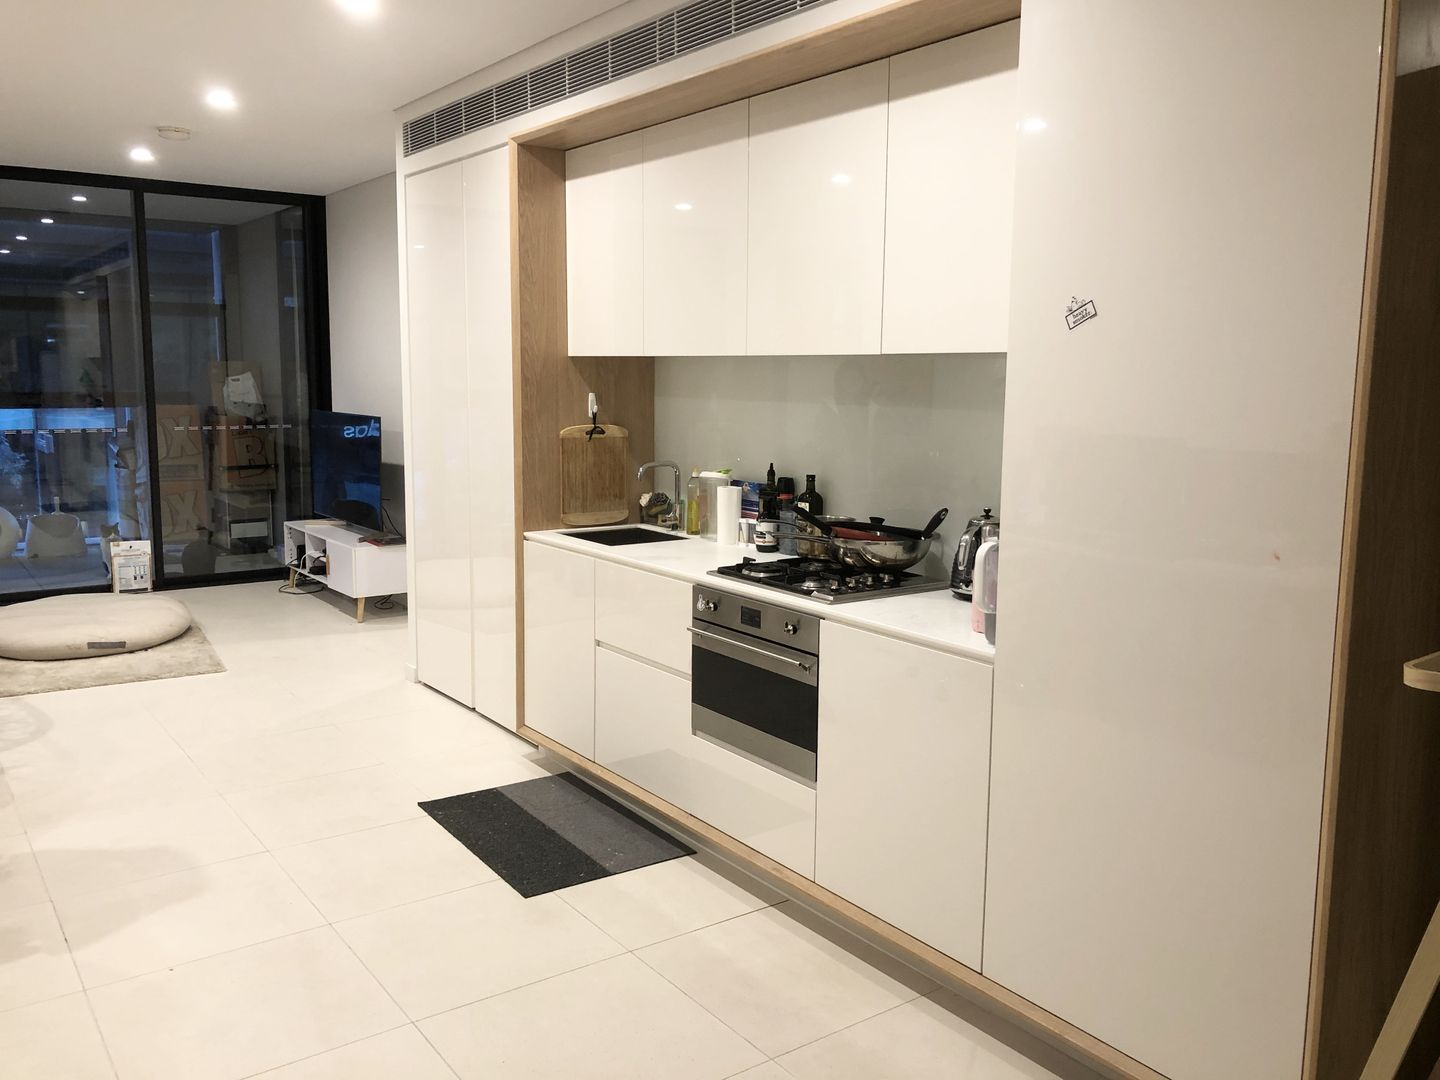 207/1 Chippendale Way, Chippendale NSW 2008, Image 1